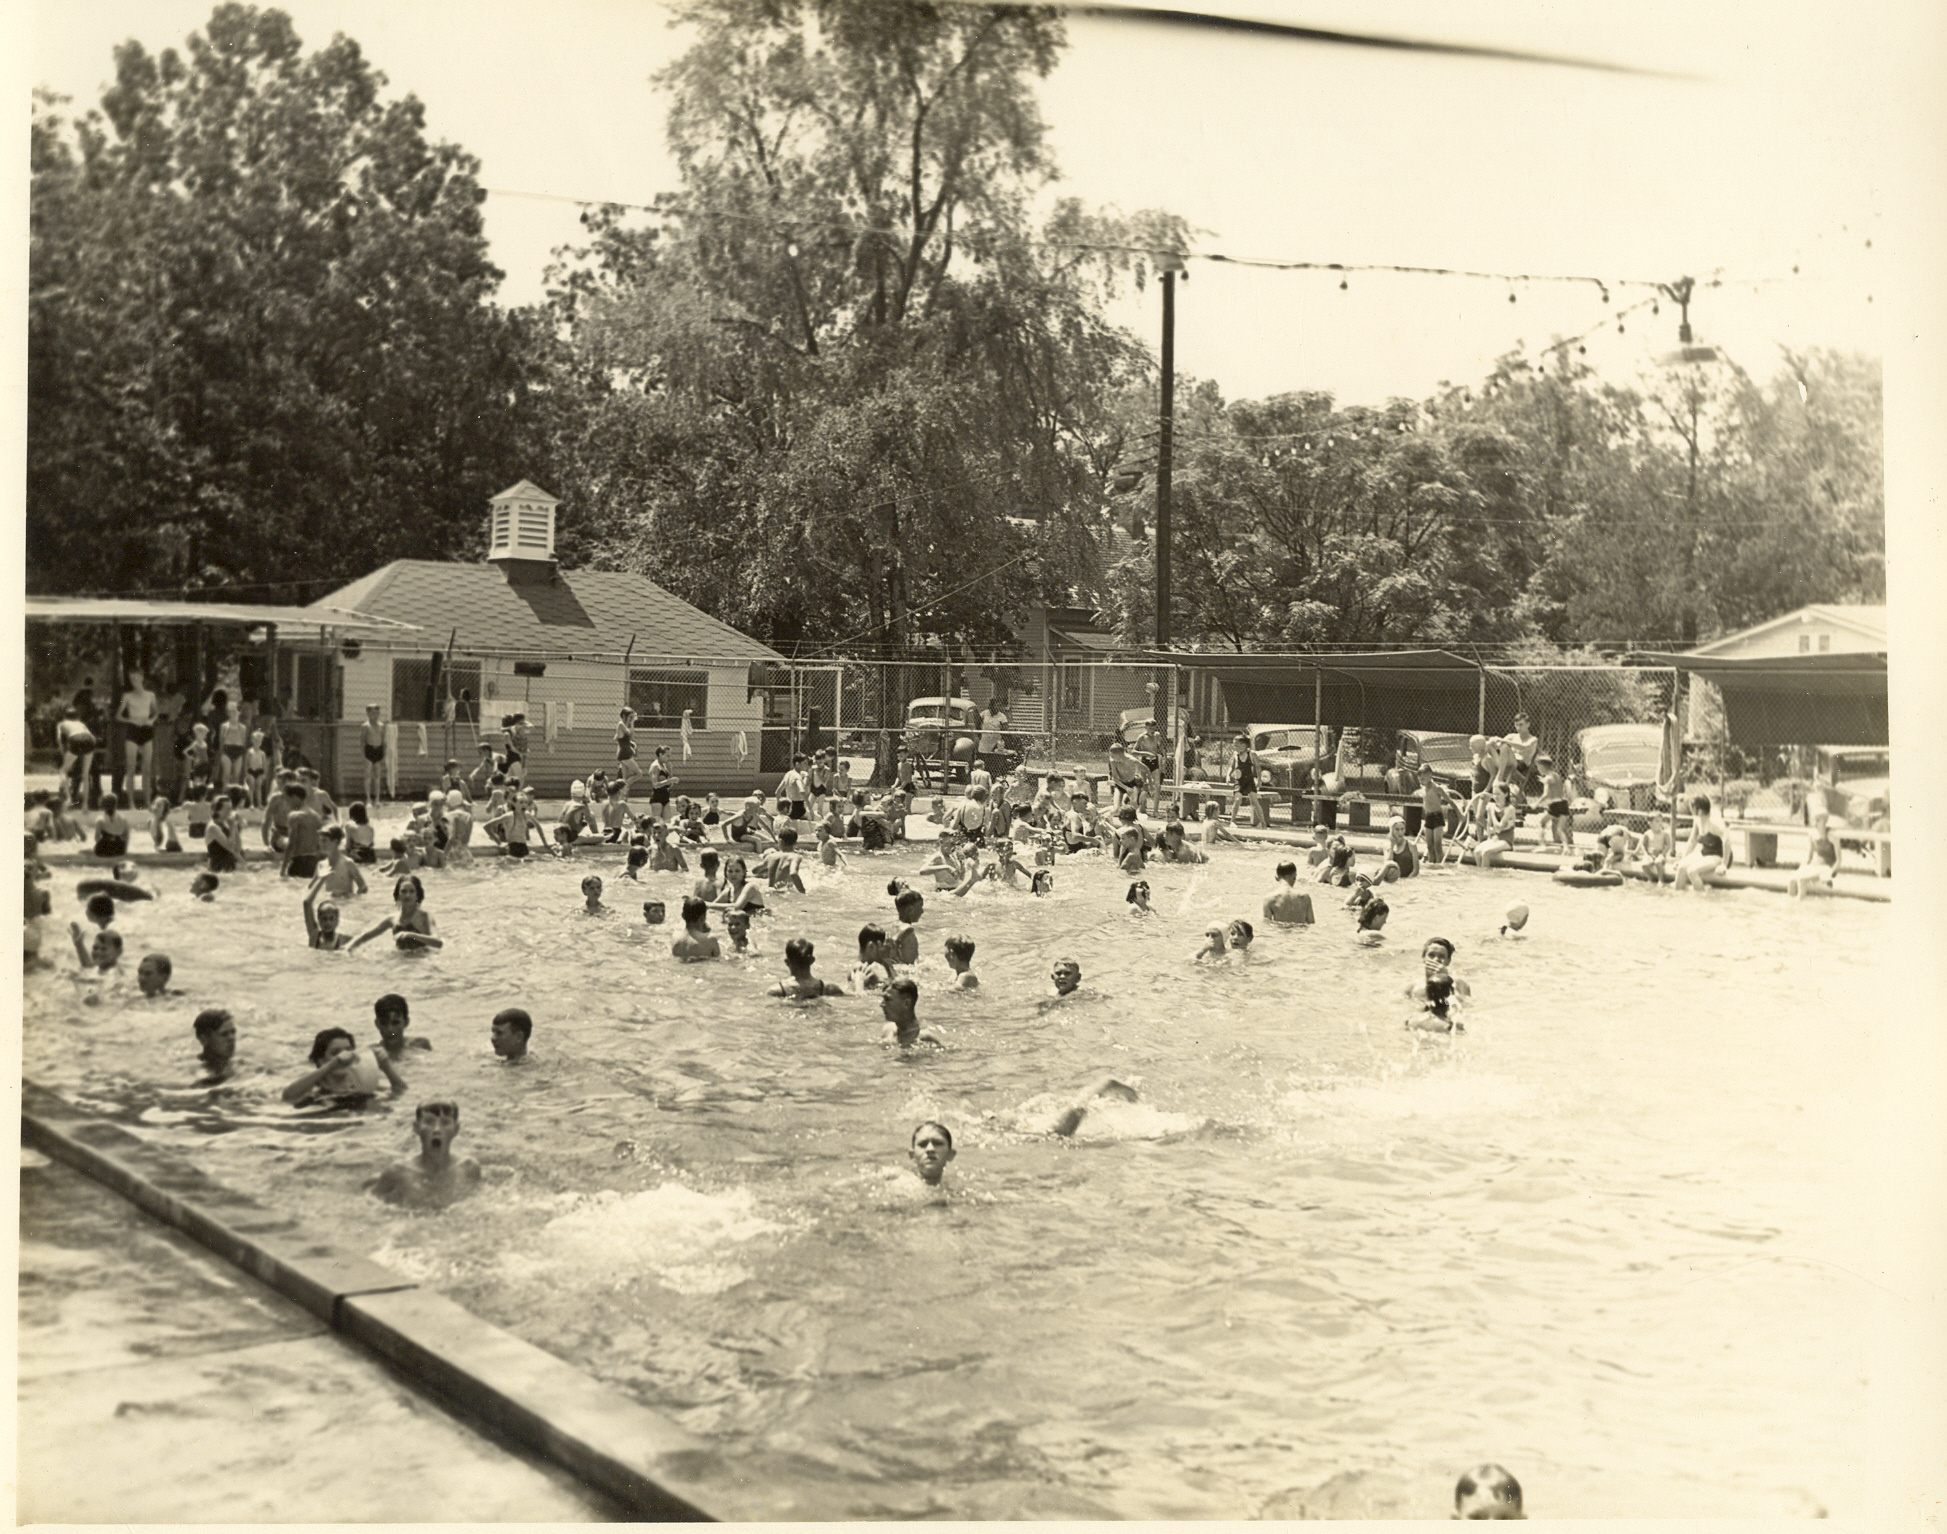 Opened in 1936 as the 1st refrigerated pool in North Carolina. It was used in regional & national swim meets in the 1940s & 1950s. The basement of the Bridgers house was used as the changing room.